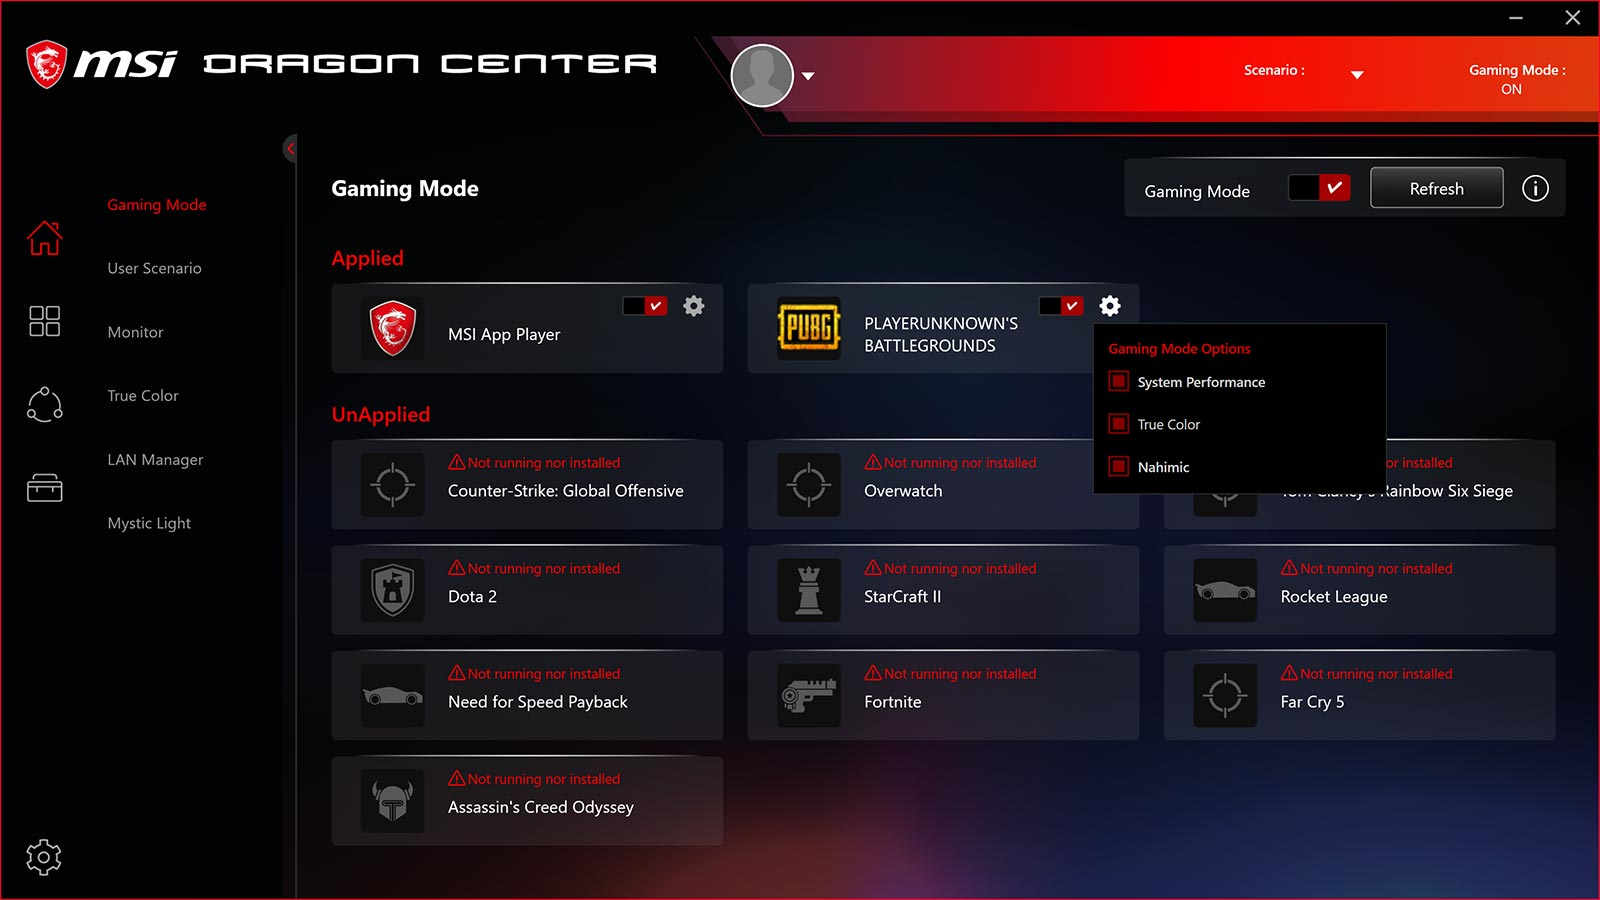 msi dragon center Gameing mode screen